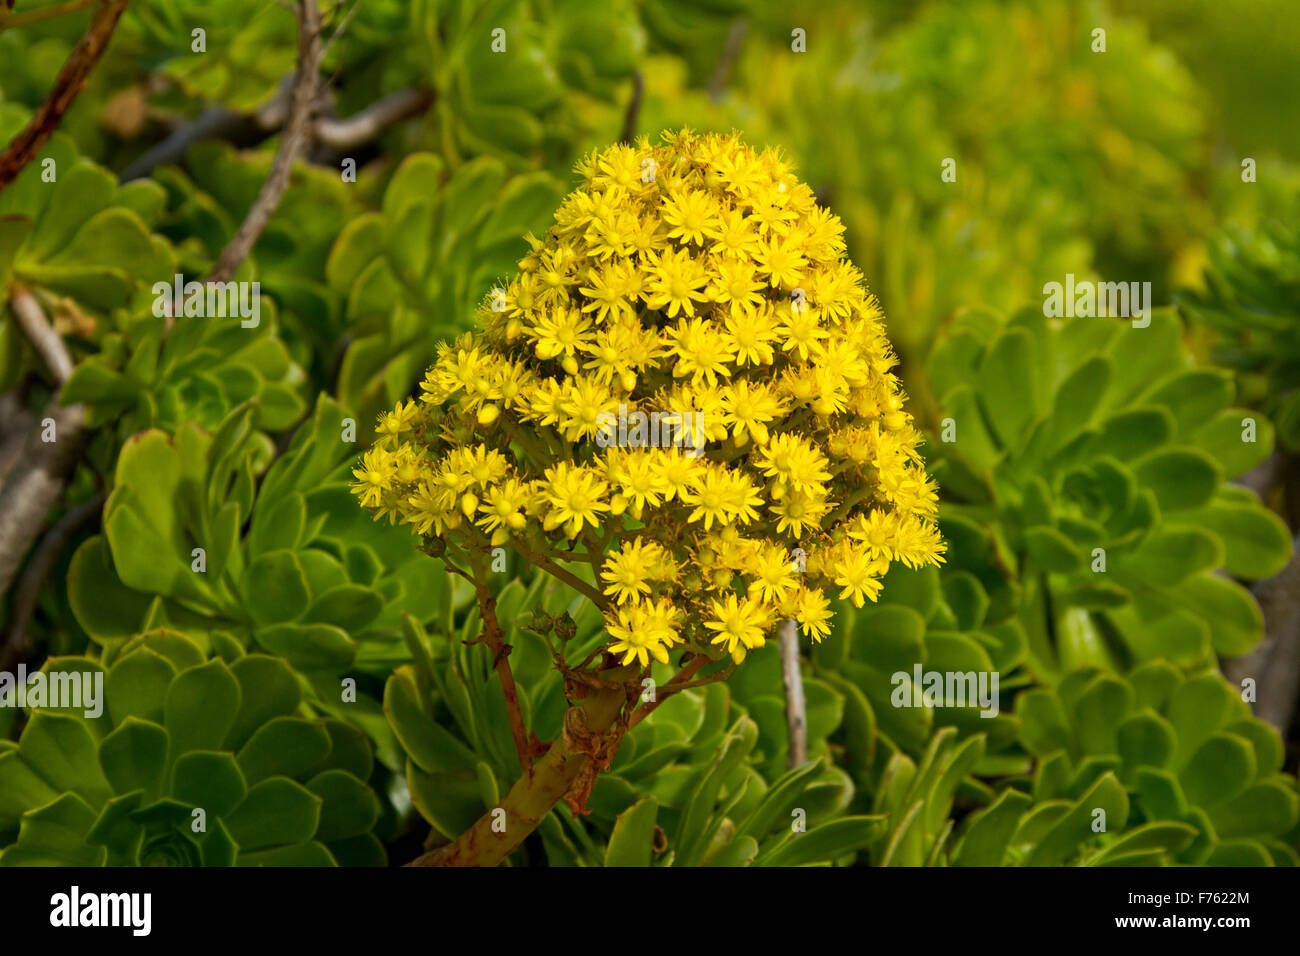 Large Conical Vivid Yellow Flower Leaves Of Succulent Aeonium